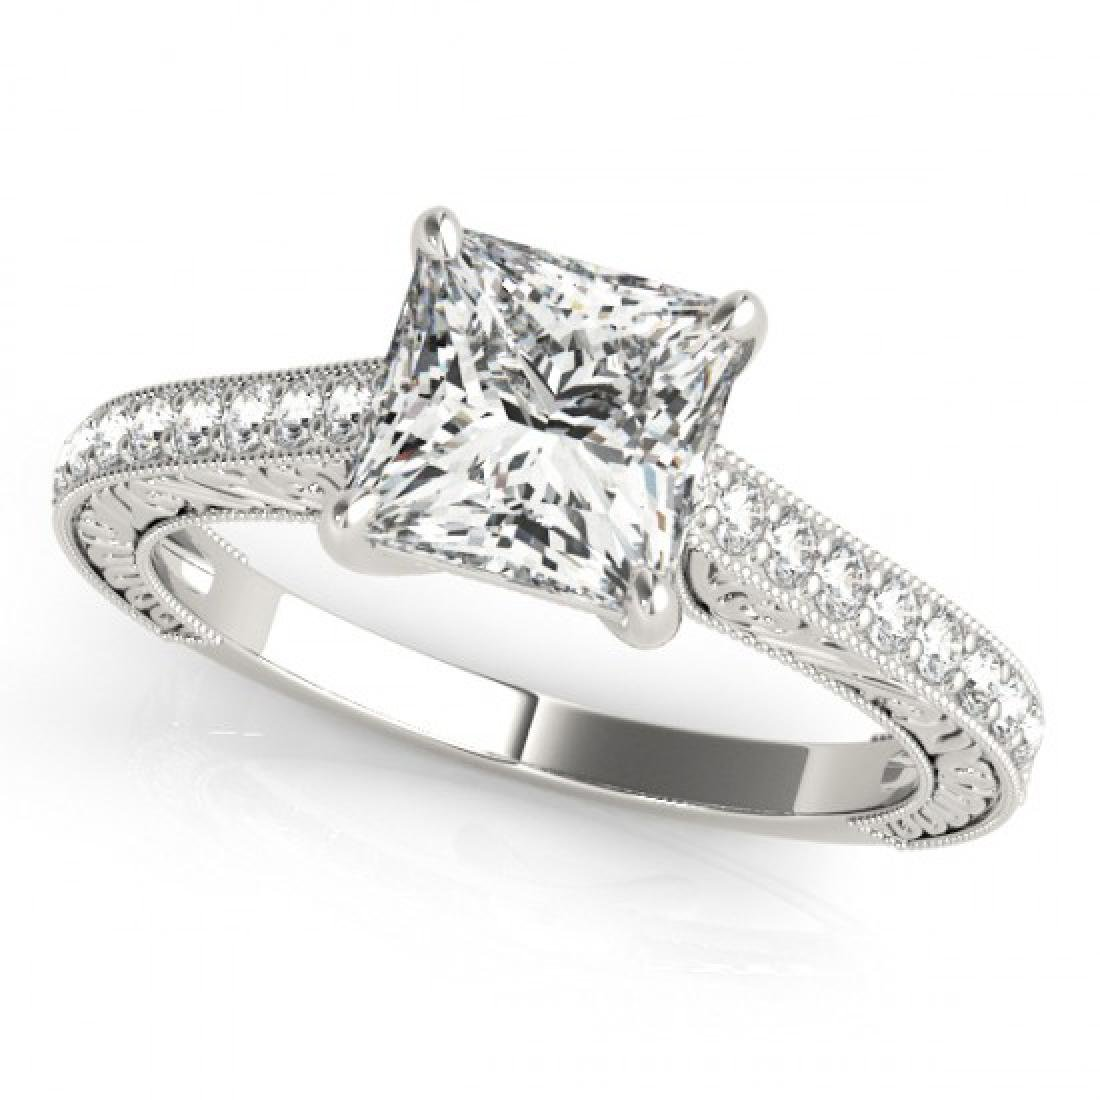 1.3 CTW Certified VS/SI Princess Diamond Solitaire Ring